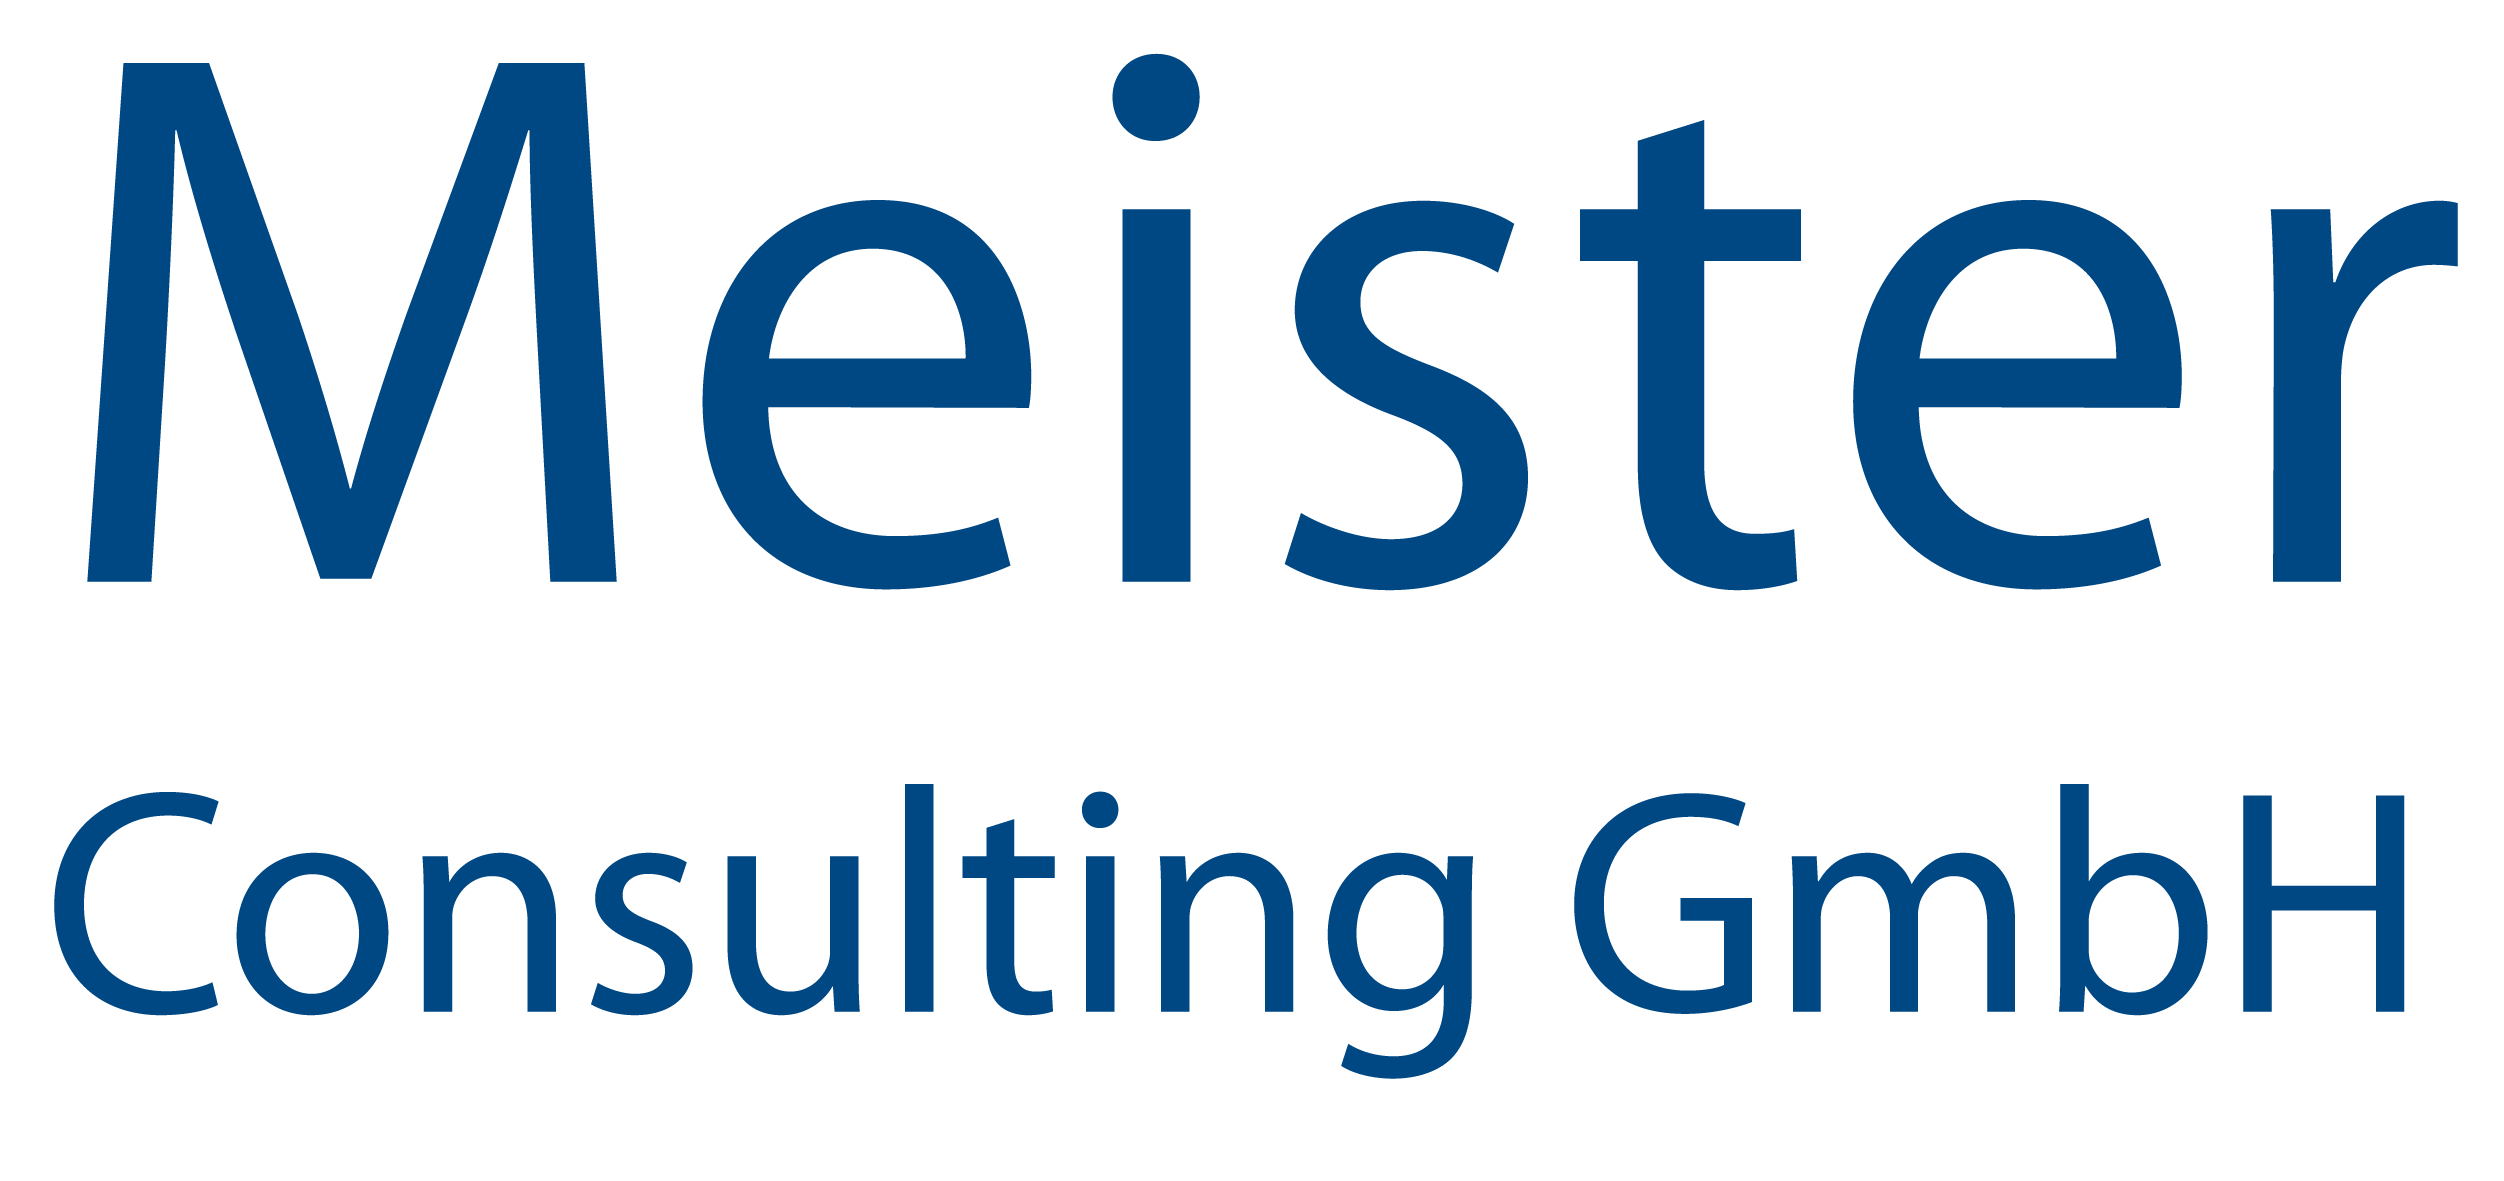 Meister Consulting GmbH